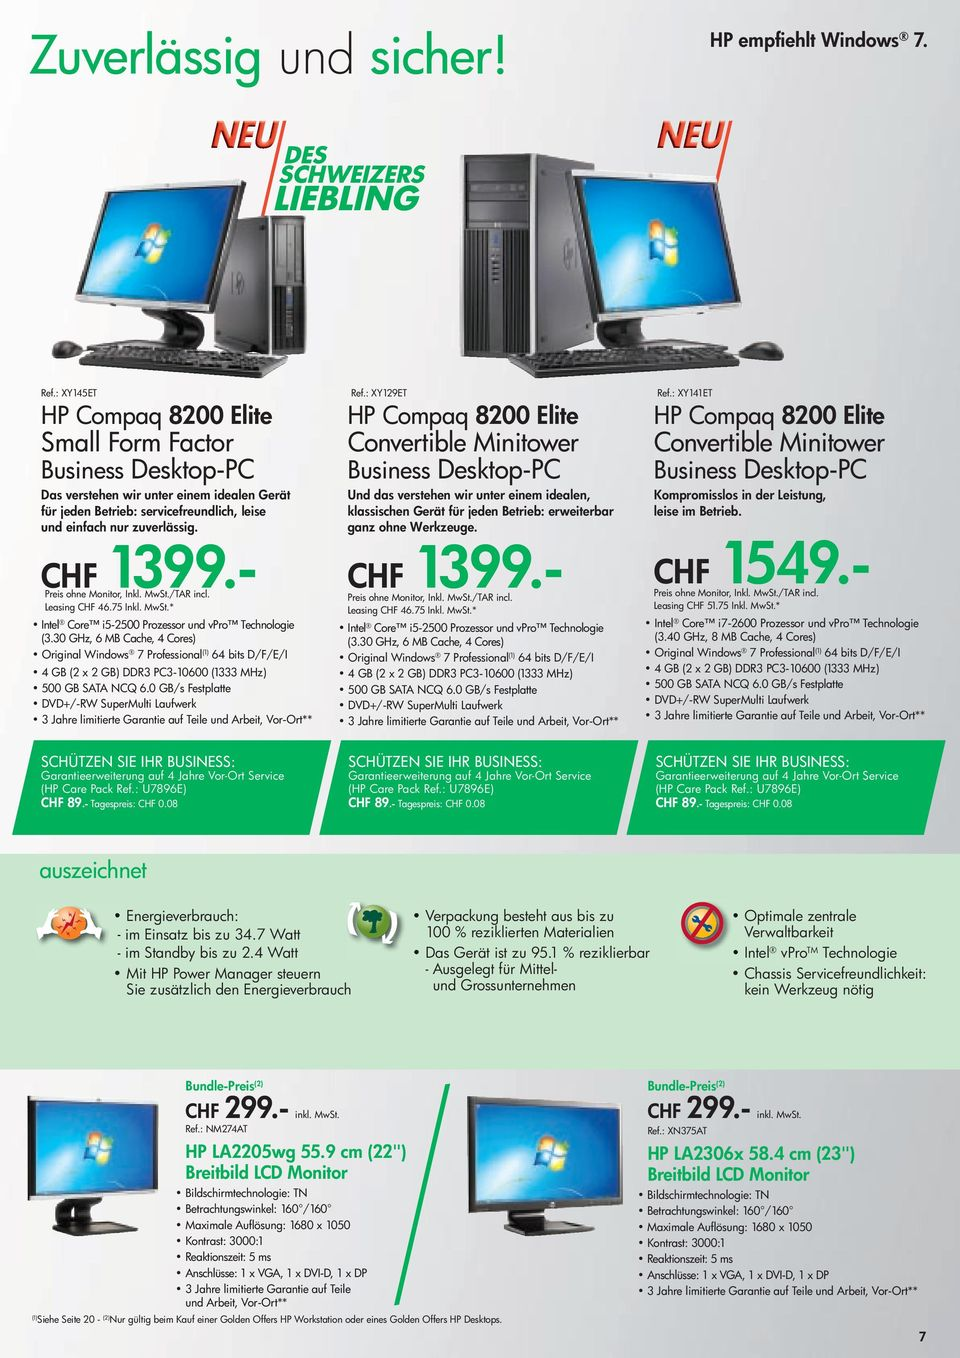 - Preis ohne Monitor, Inkl. MwSt./TAR incl. Leasing CHF 46.75 Inkl. MwSt.* Intel Core i5-2500 Prozessor und vpro Technologie (3.